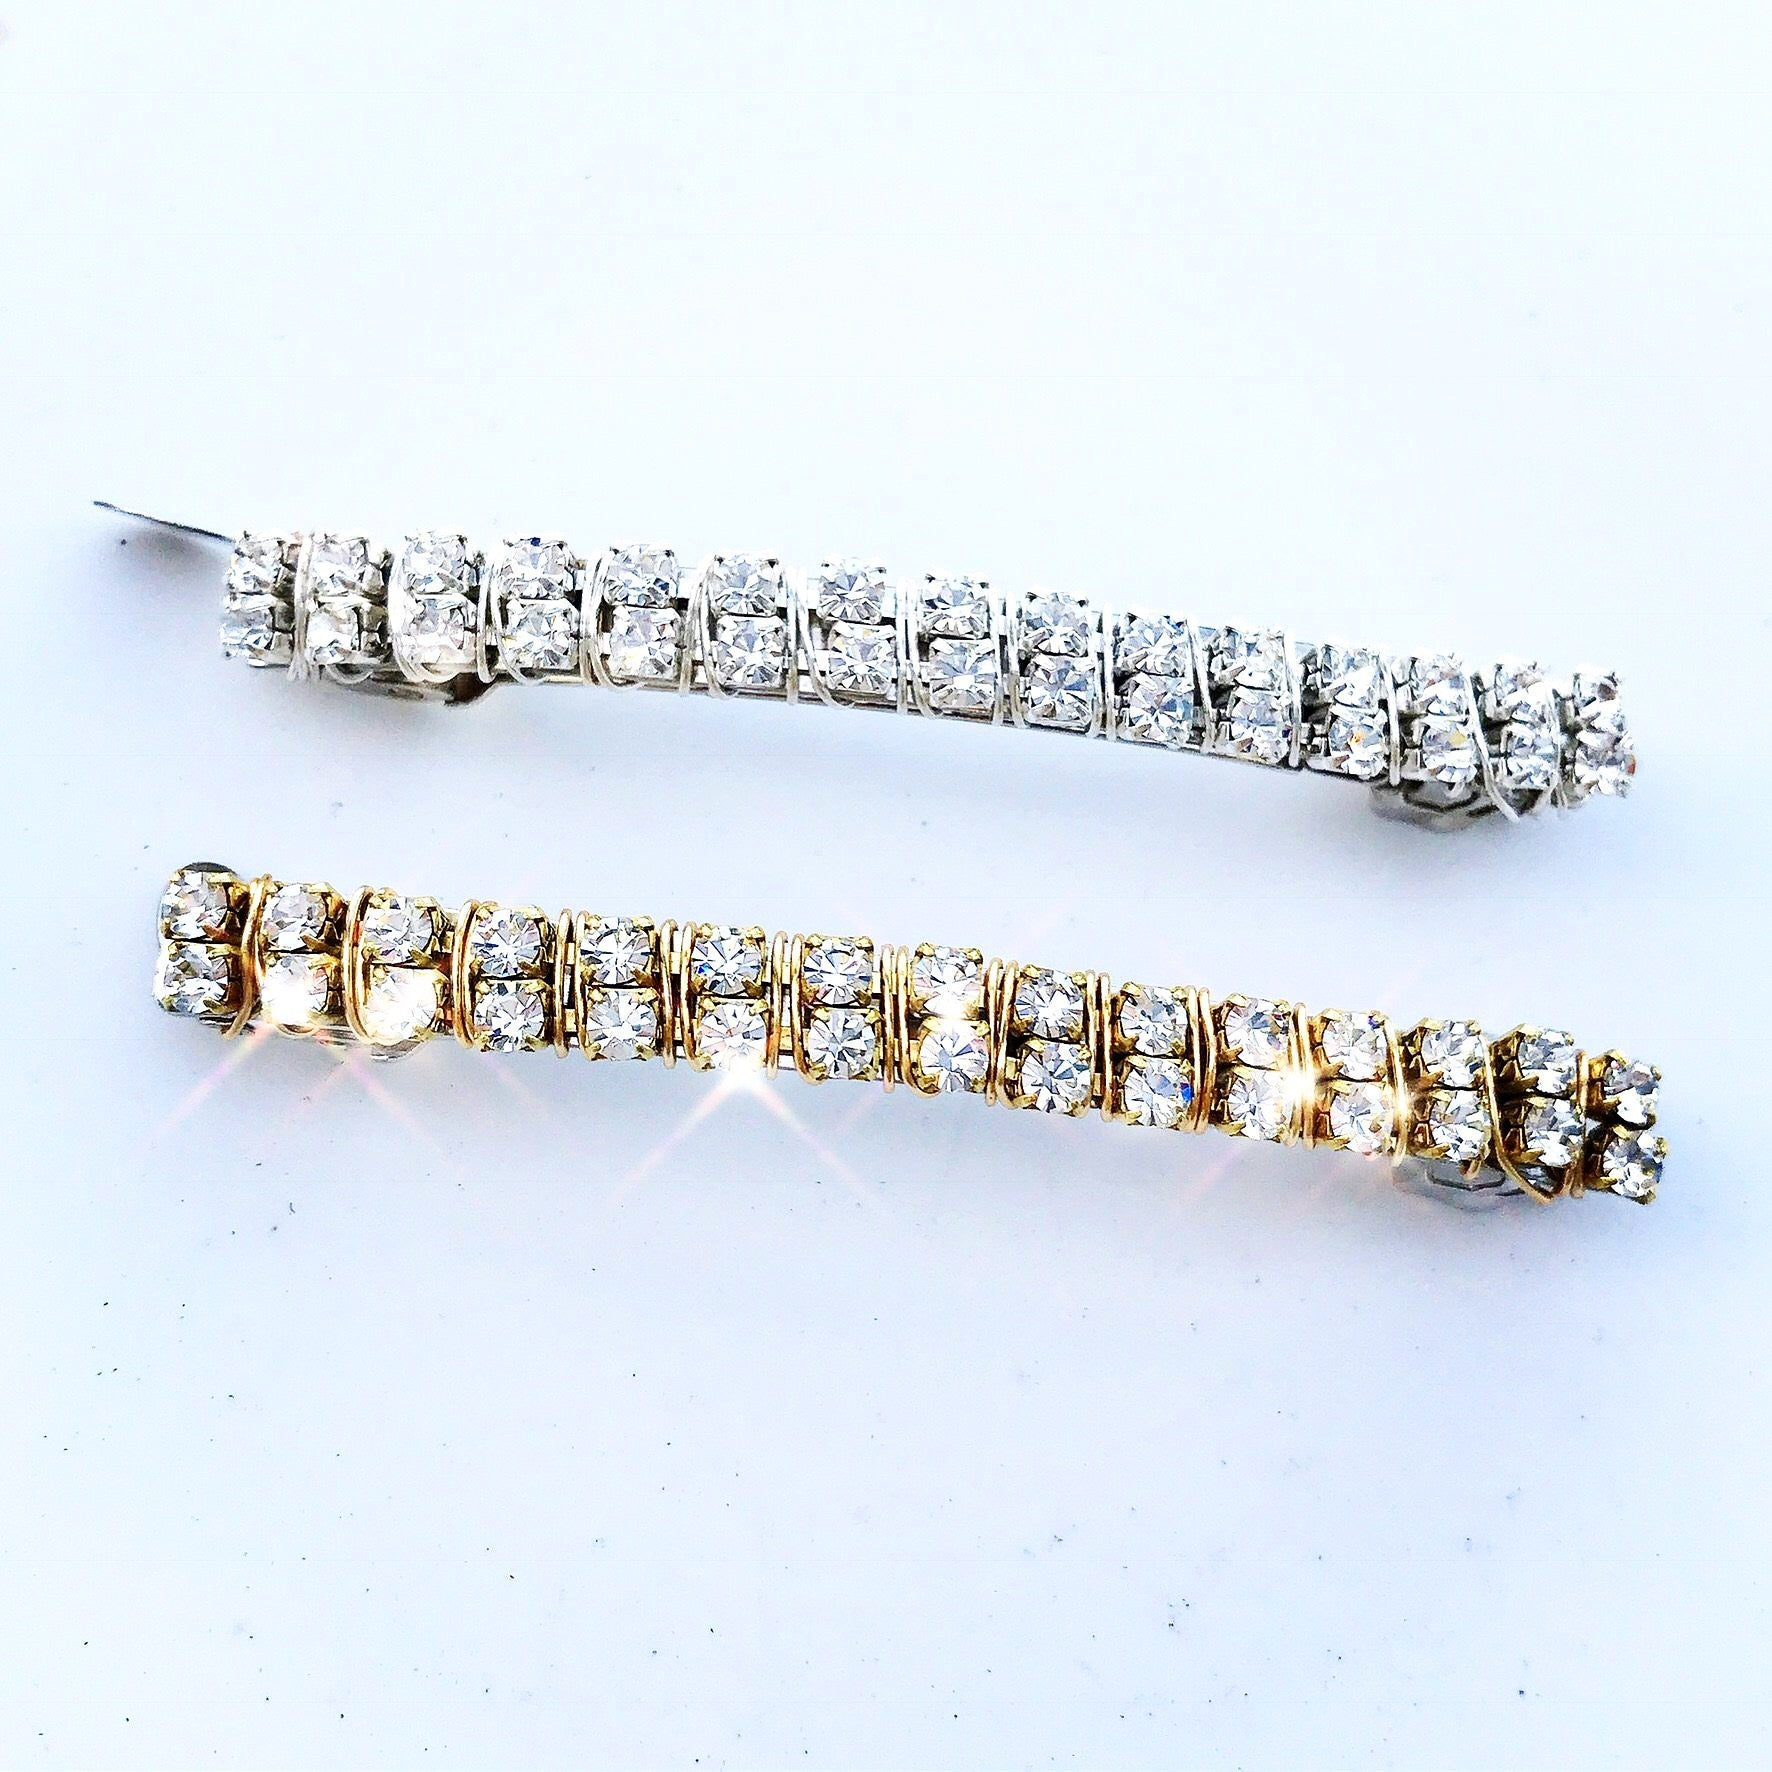 Crystal Chain Barrette